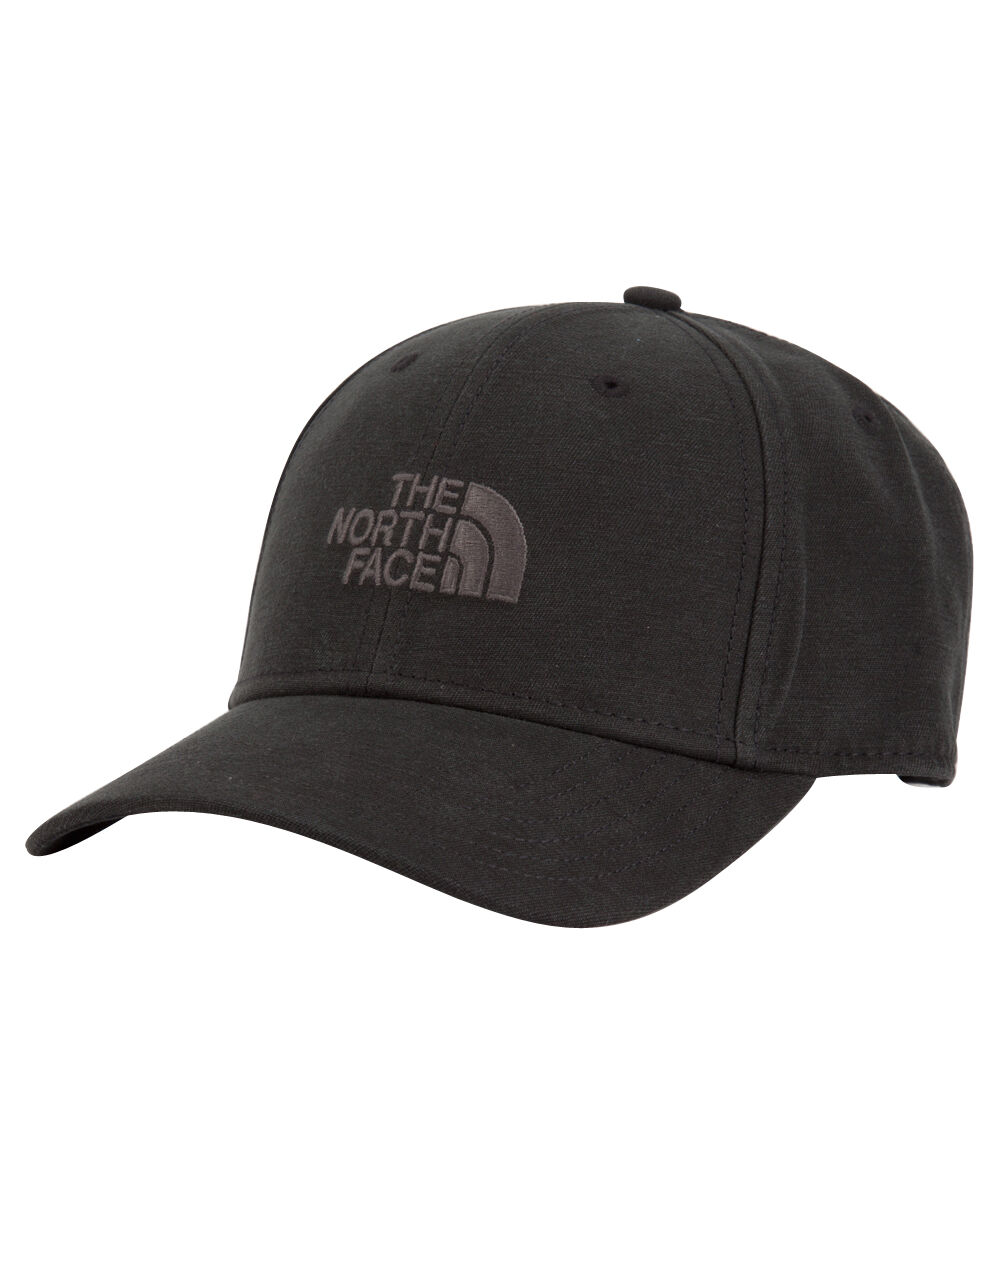 Image of THE NORTH FACE 66 CLASSIC STRAPBACK HAT